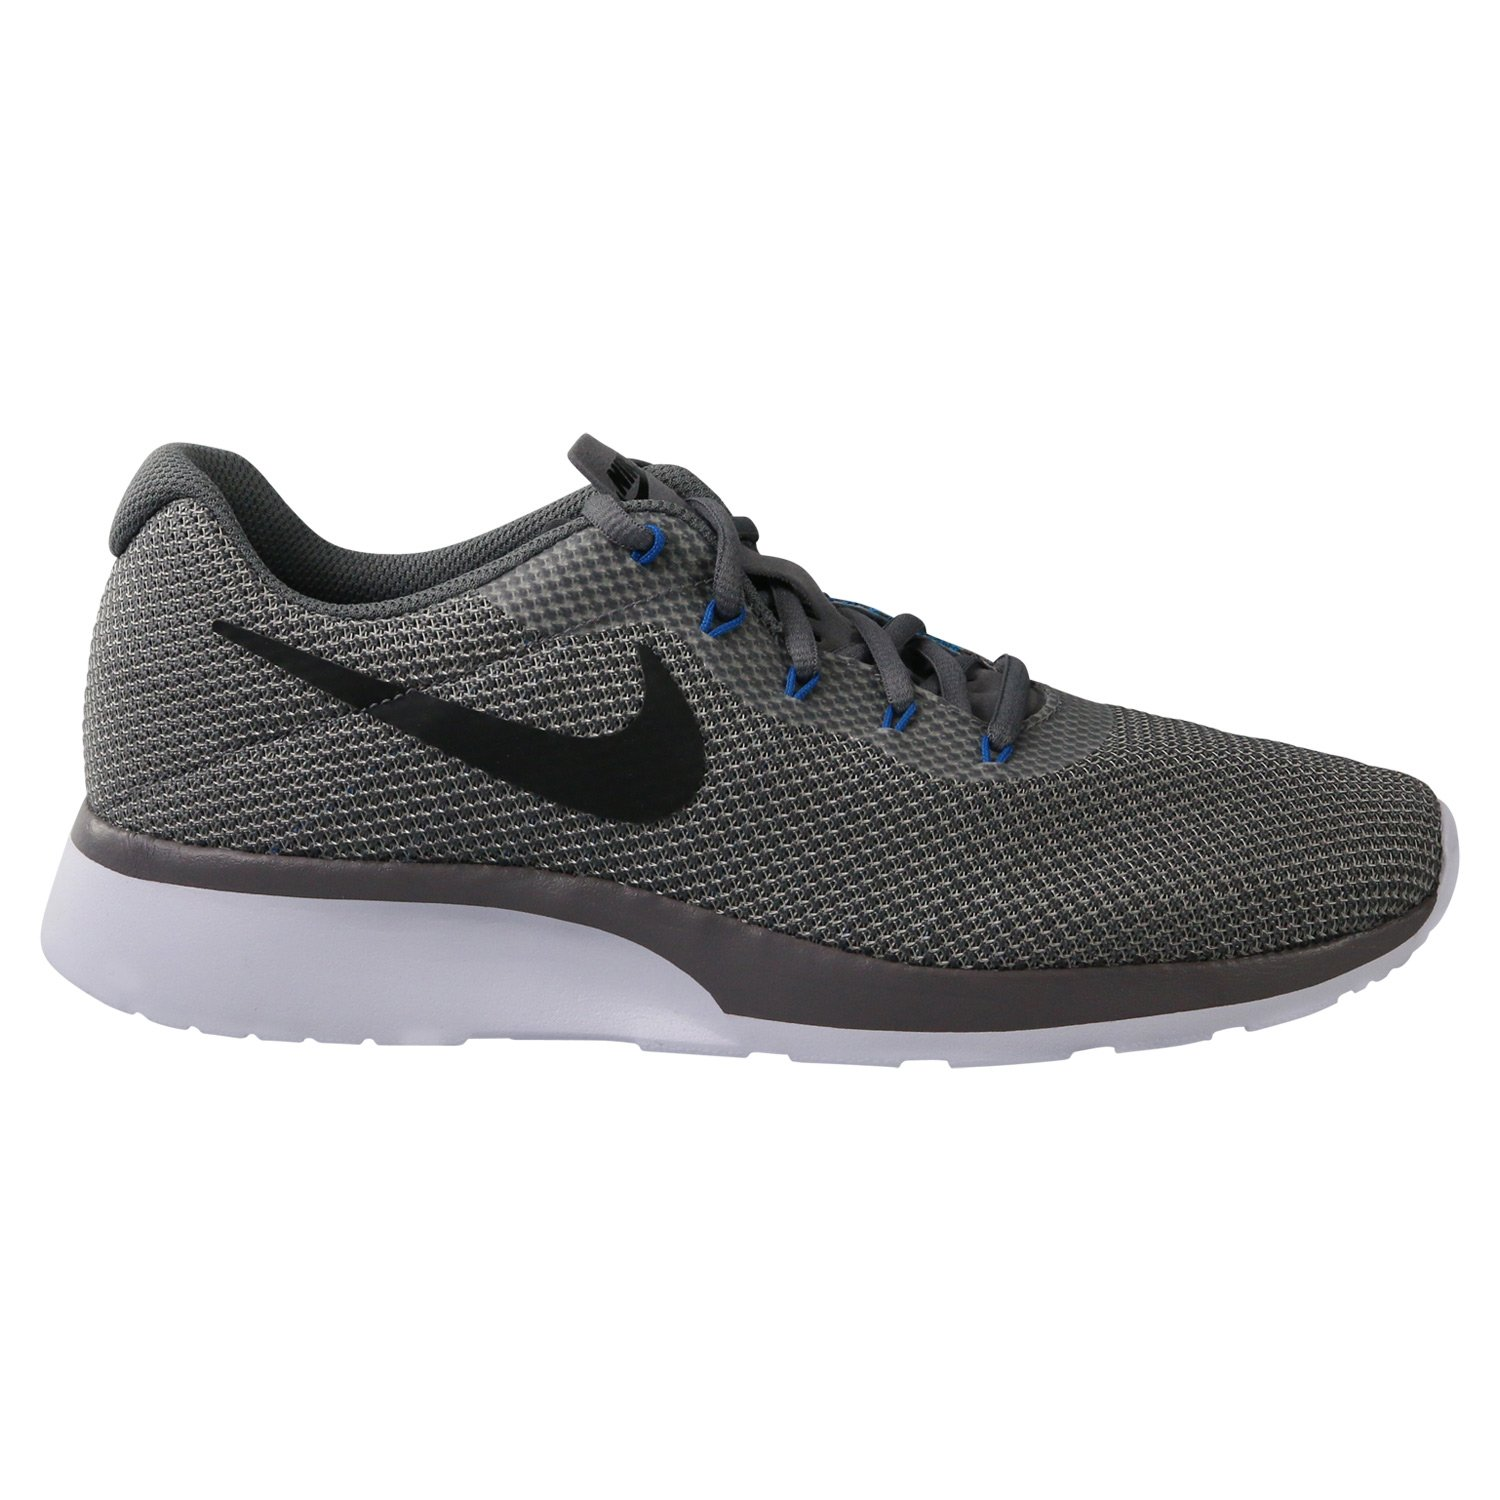 79c9004d51b4 Galleon - Nike Mens Tanjun Racer Gunsmoke Black-Atmosphere Grey 921669-006  (8 D(M) US)